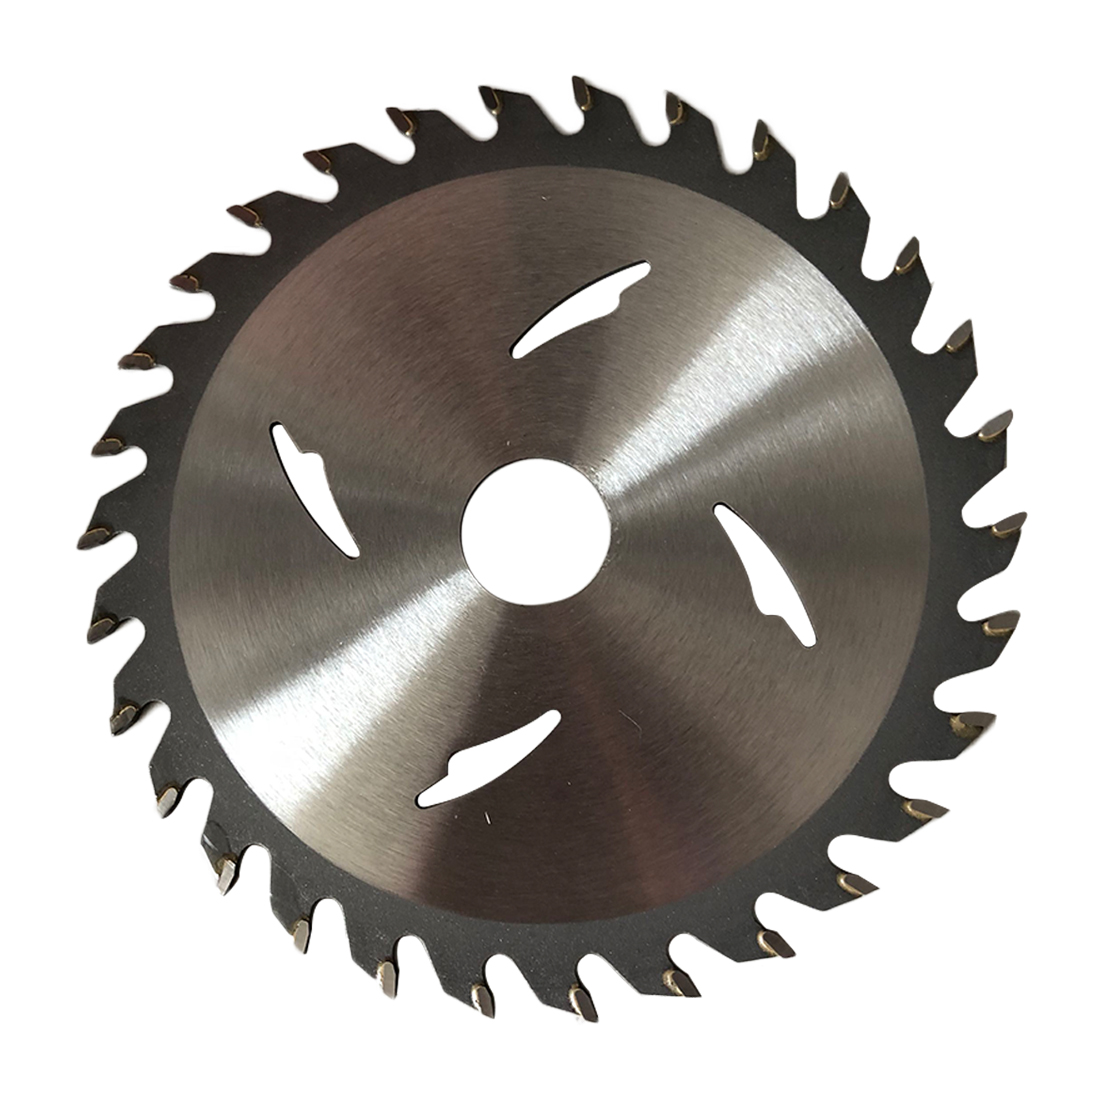 1PC 125*22/20*30T/40T TCT Saw Blade Carbide Tipped Saw Sharp And Durable Wood Cutting Discblade Cutting Piece Circular Saw